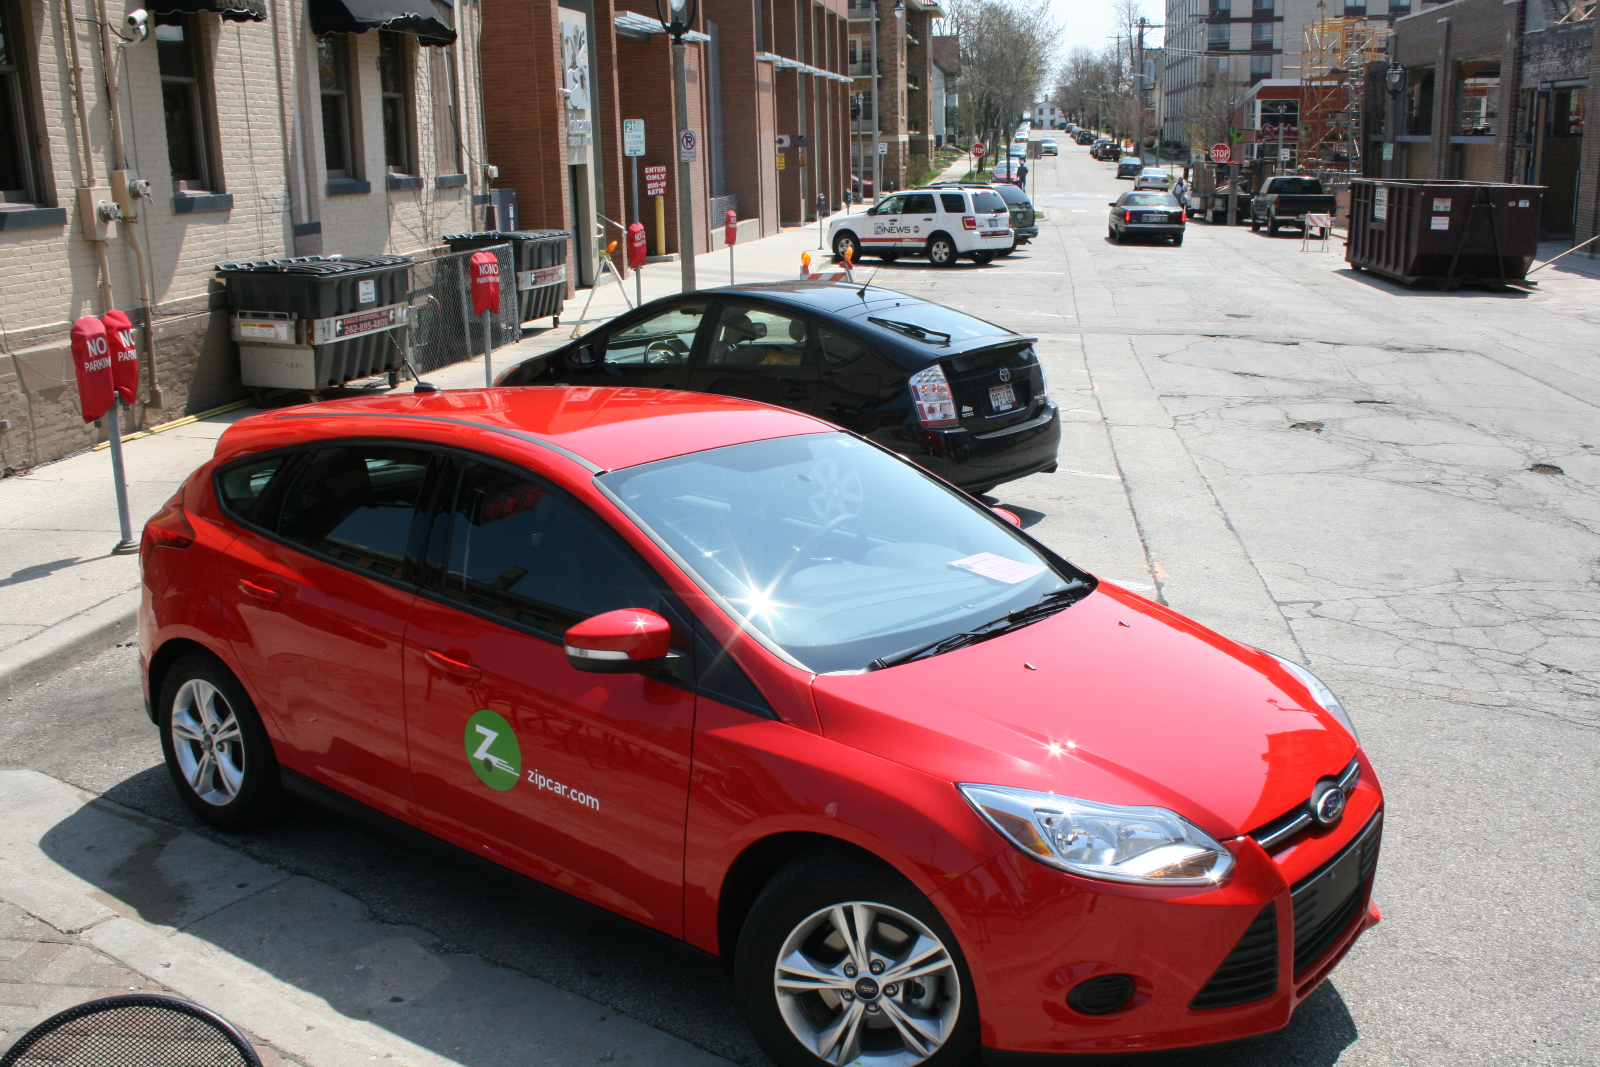 ZipCar parked on Milwaukee\'s East Side.